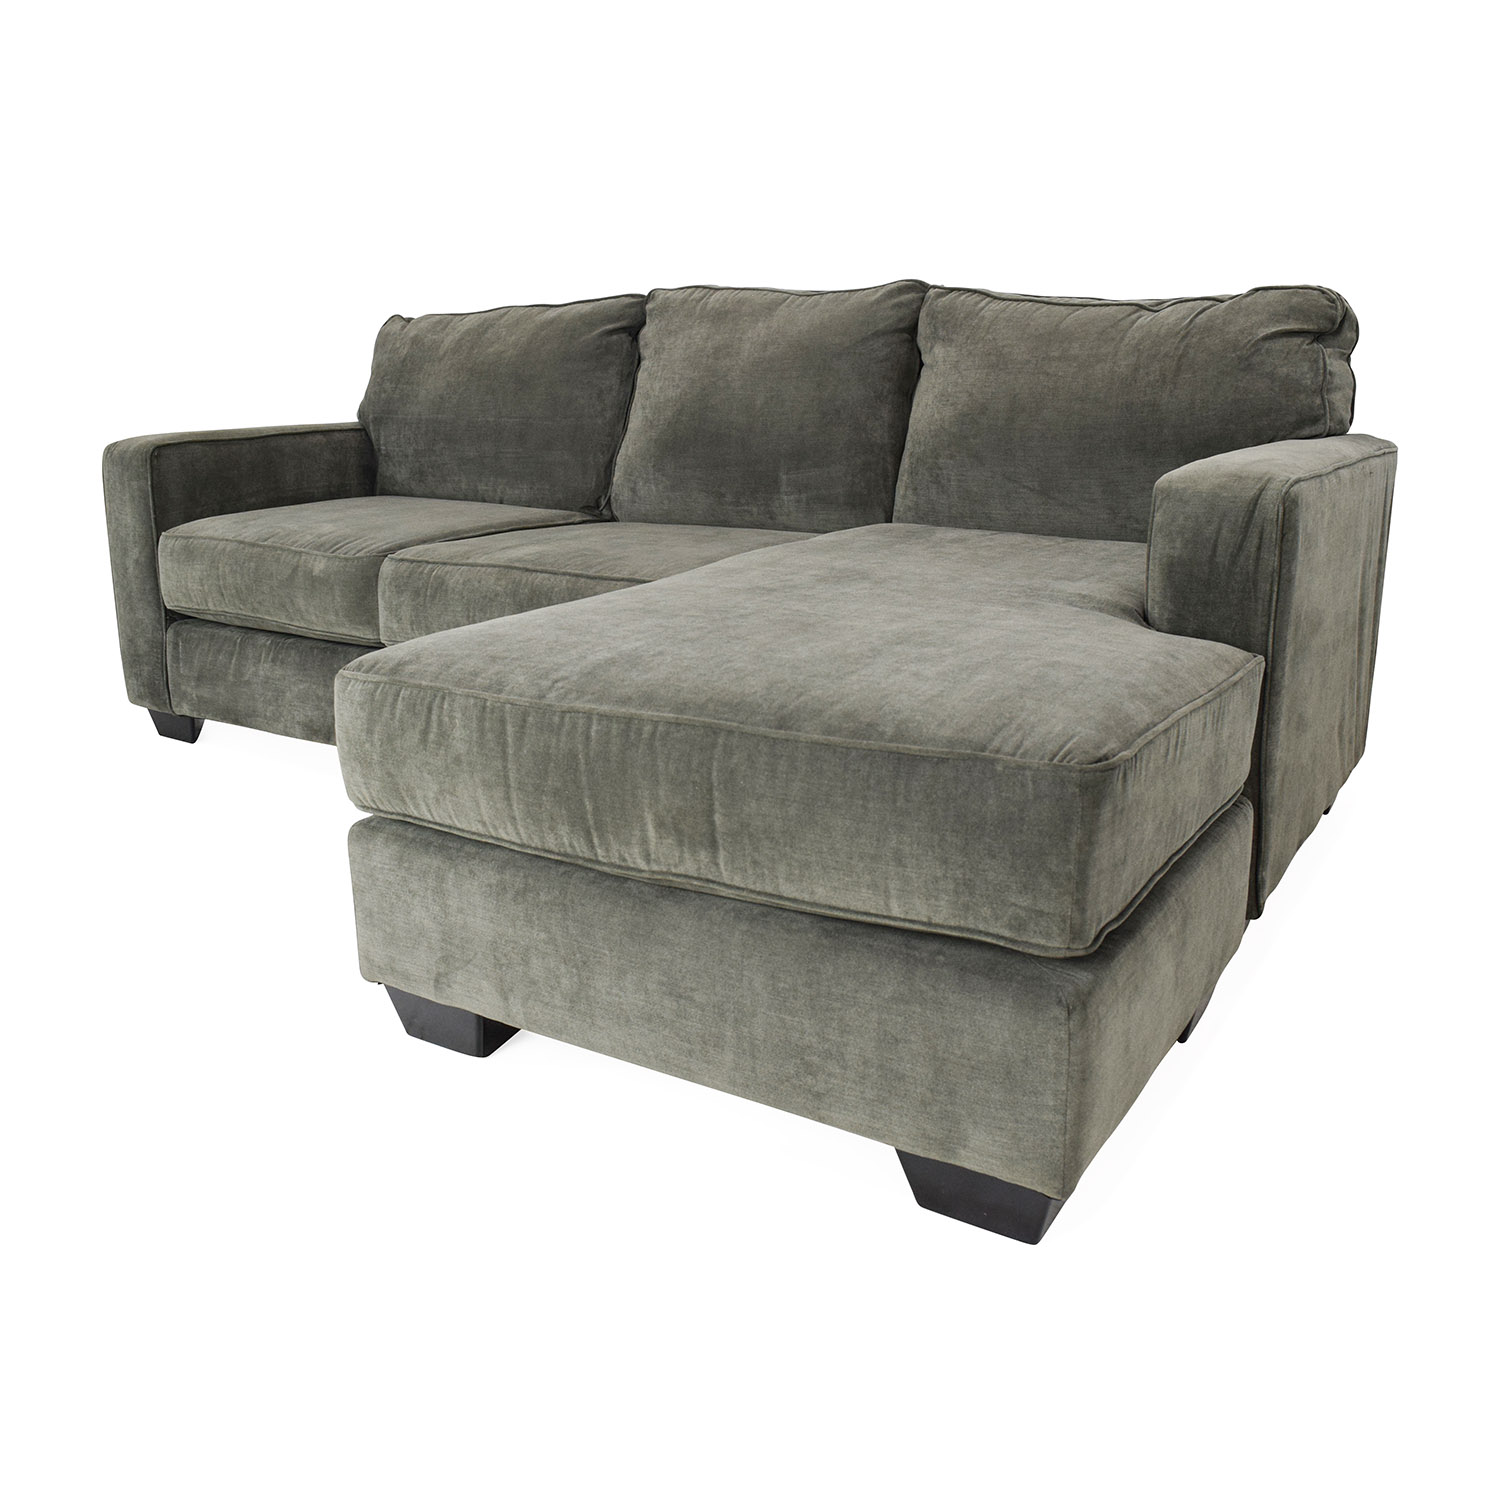 54% OFF Jennifer Convertibles Jennifer Convertibles Sectional